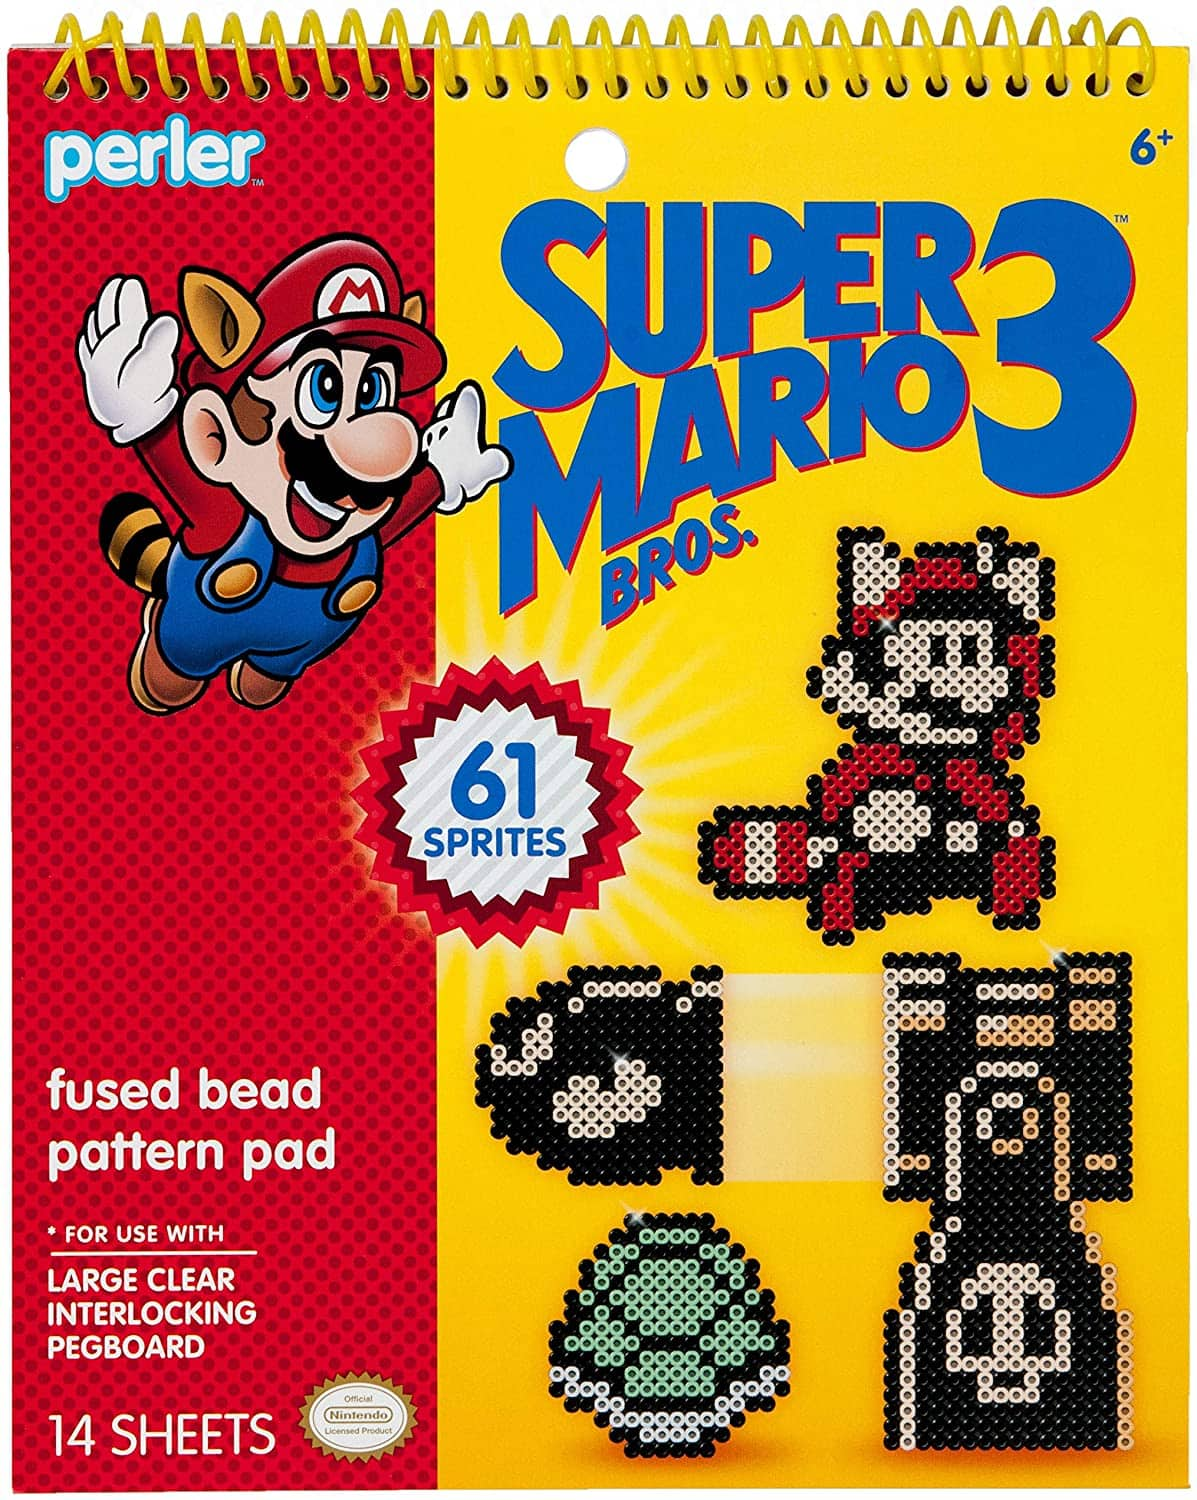 Perler Super Mario Bros 3 Fuse Bead Pattern Book (61 Different Images) $6.50 + Free Shipping w/ Prime or $25+